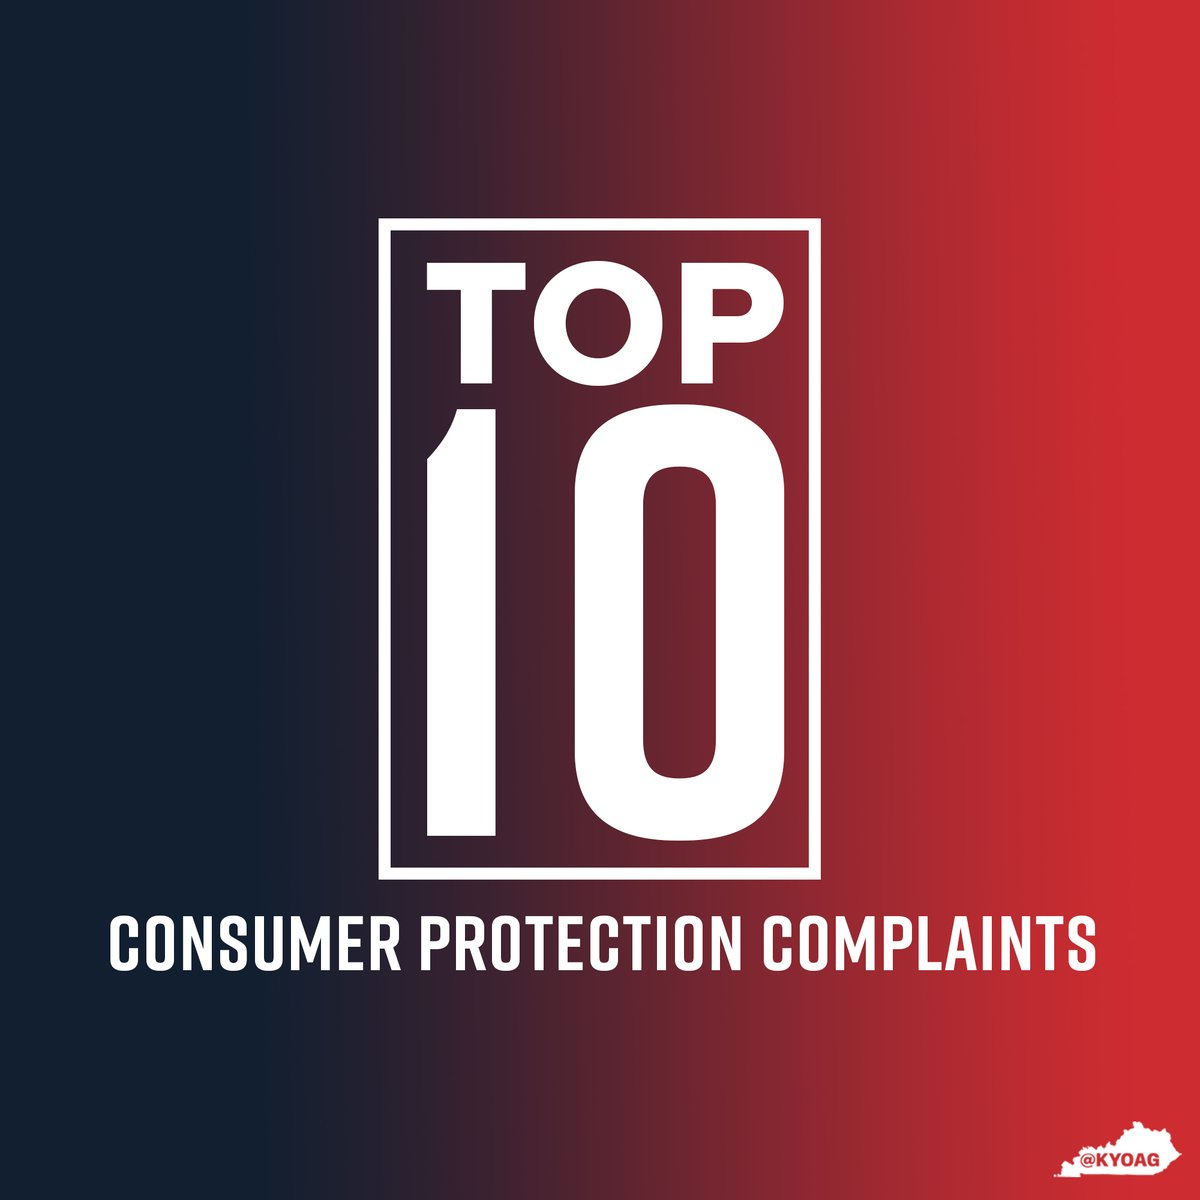 Last year, our office obtained more than $500,000 in restitution for Kentuckians by mediating complaints between consumers and businesses. To file a consumer complaint, call our Consumer Protection hotline at 1-888-432-9257 or complete our online form: